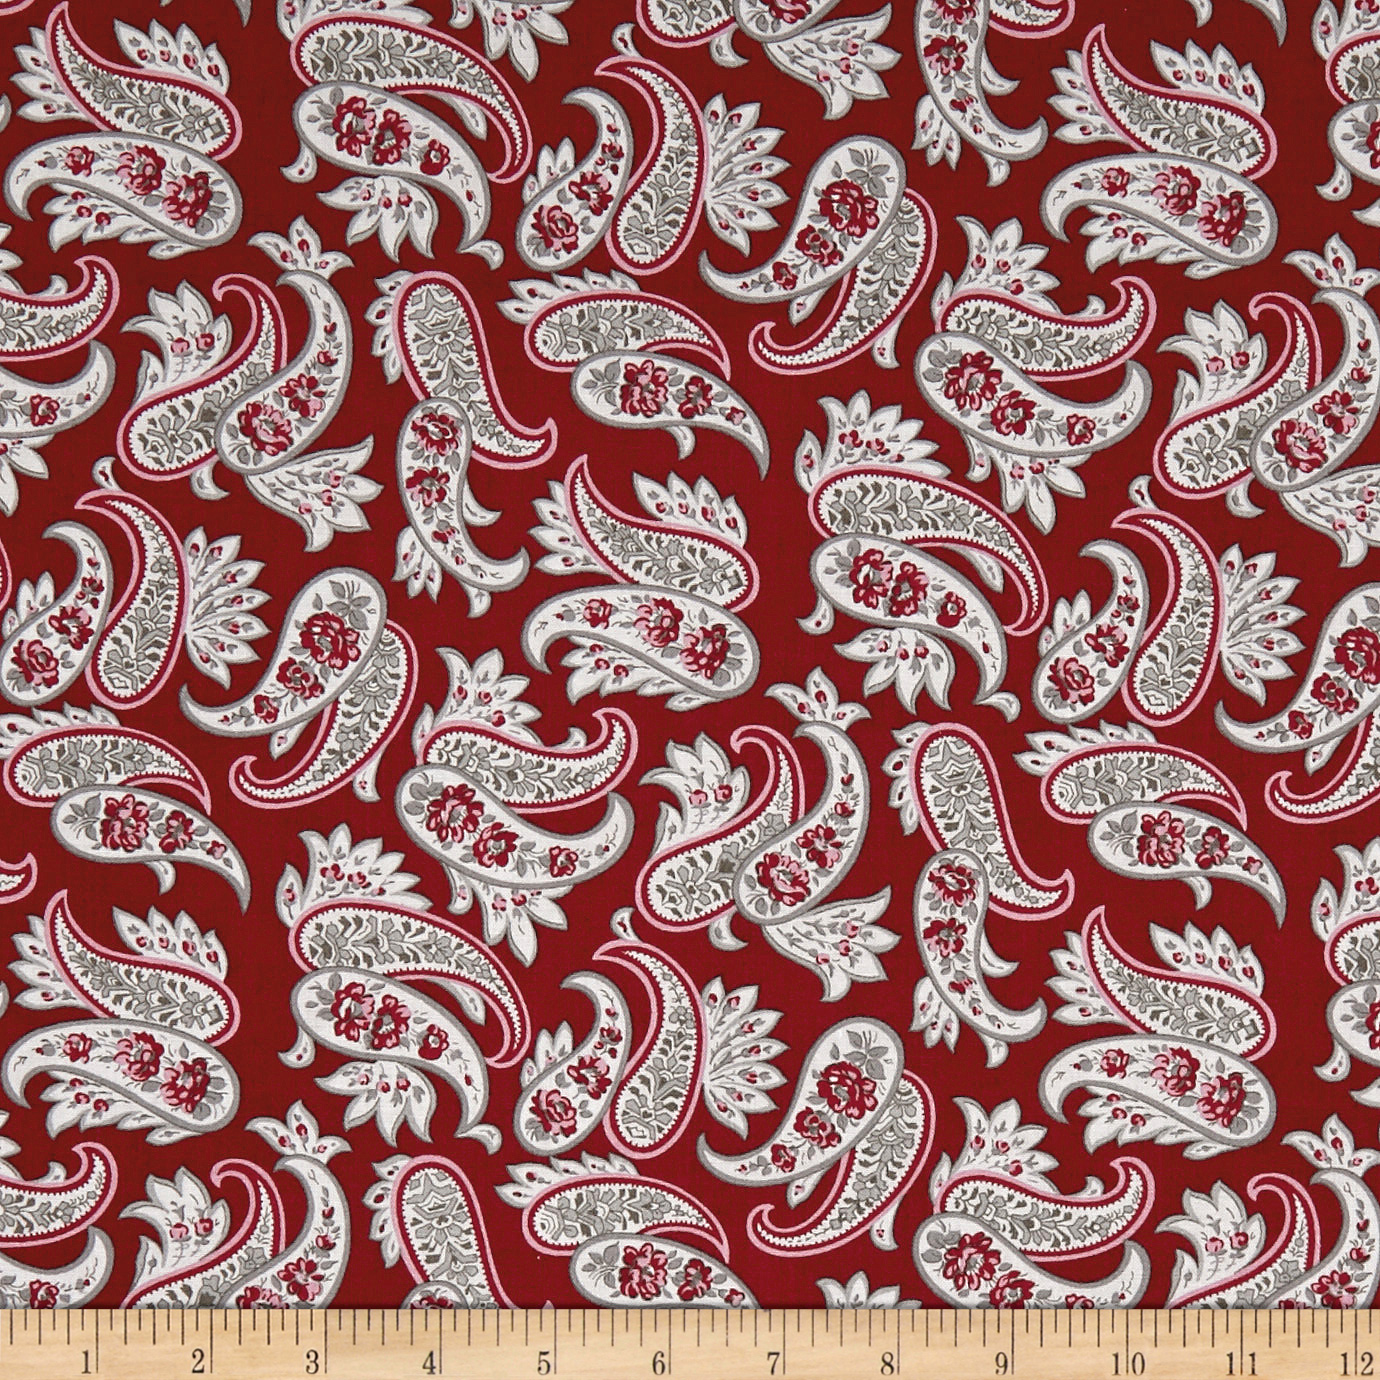 Penny Rose Rustic Romance Rustic Paisley Red Fabric